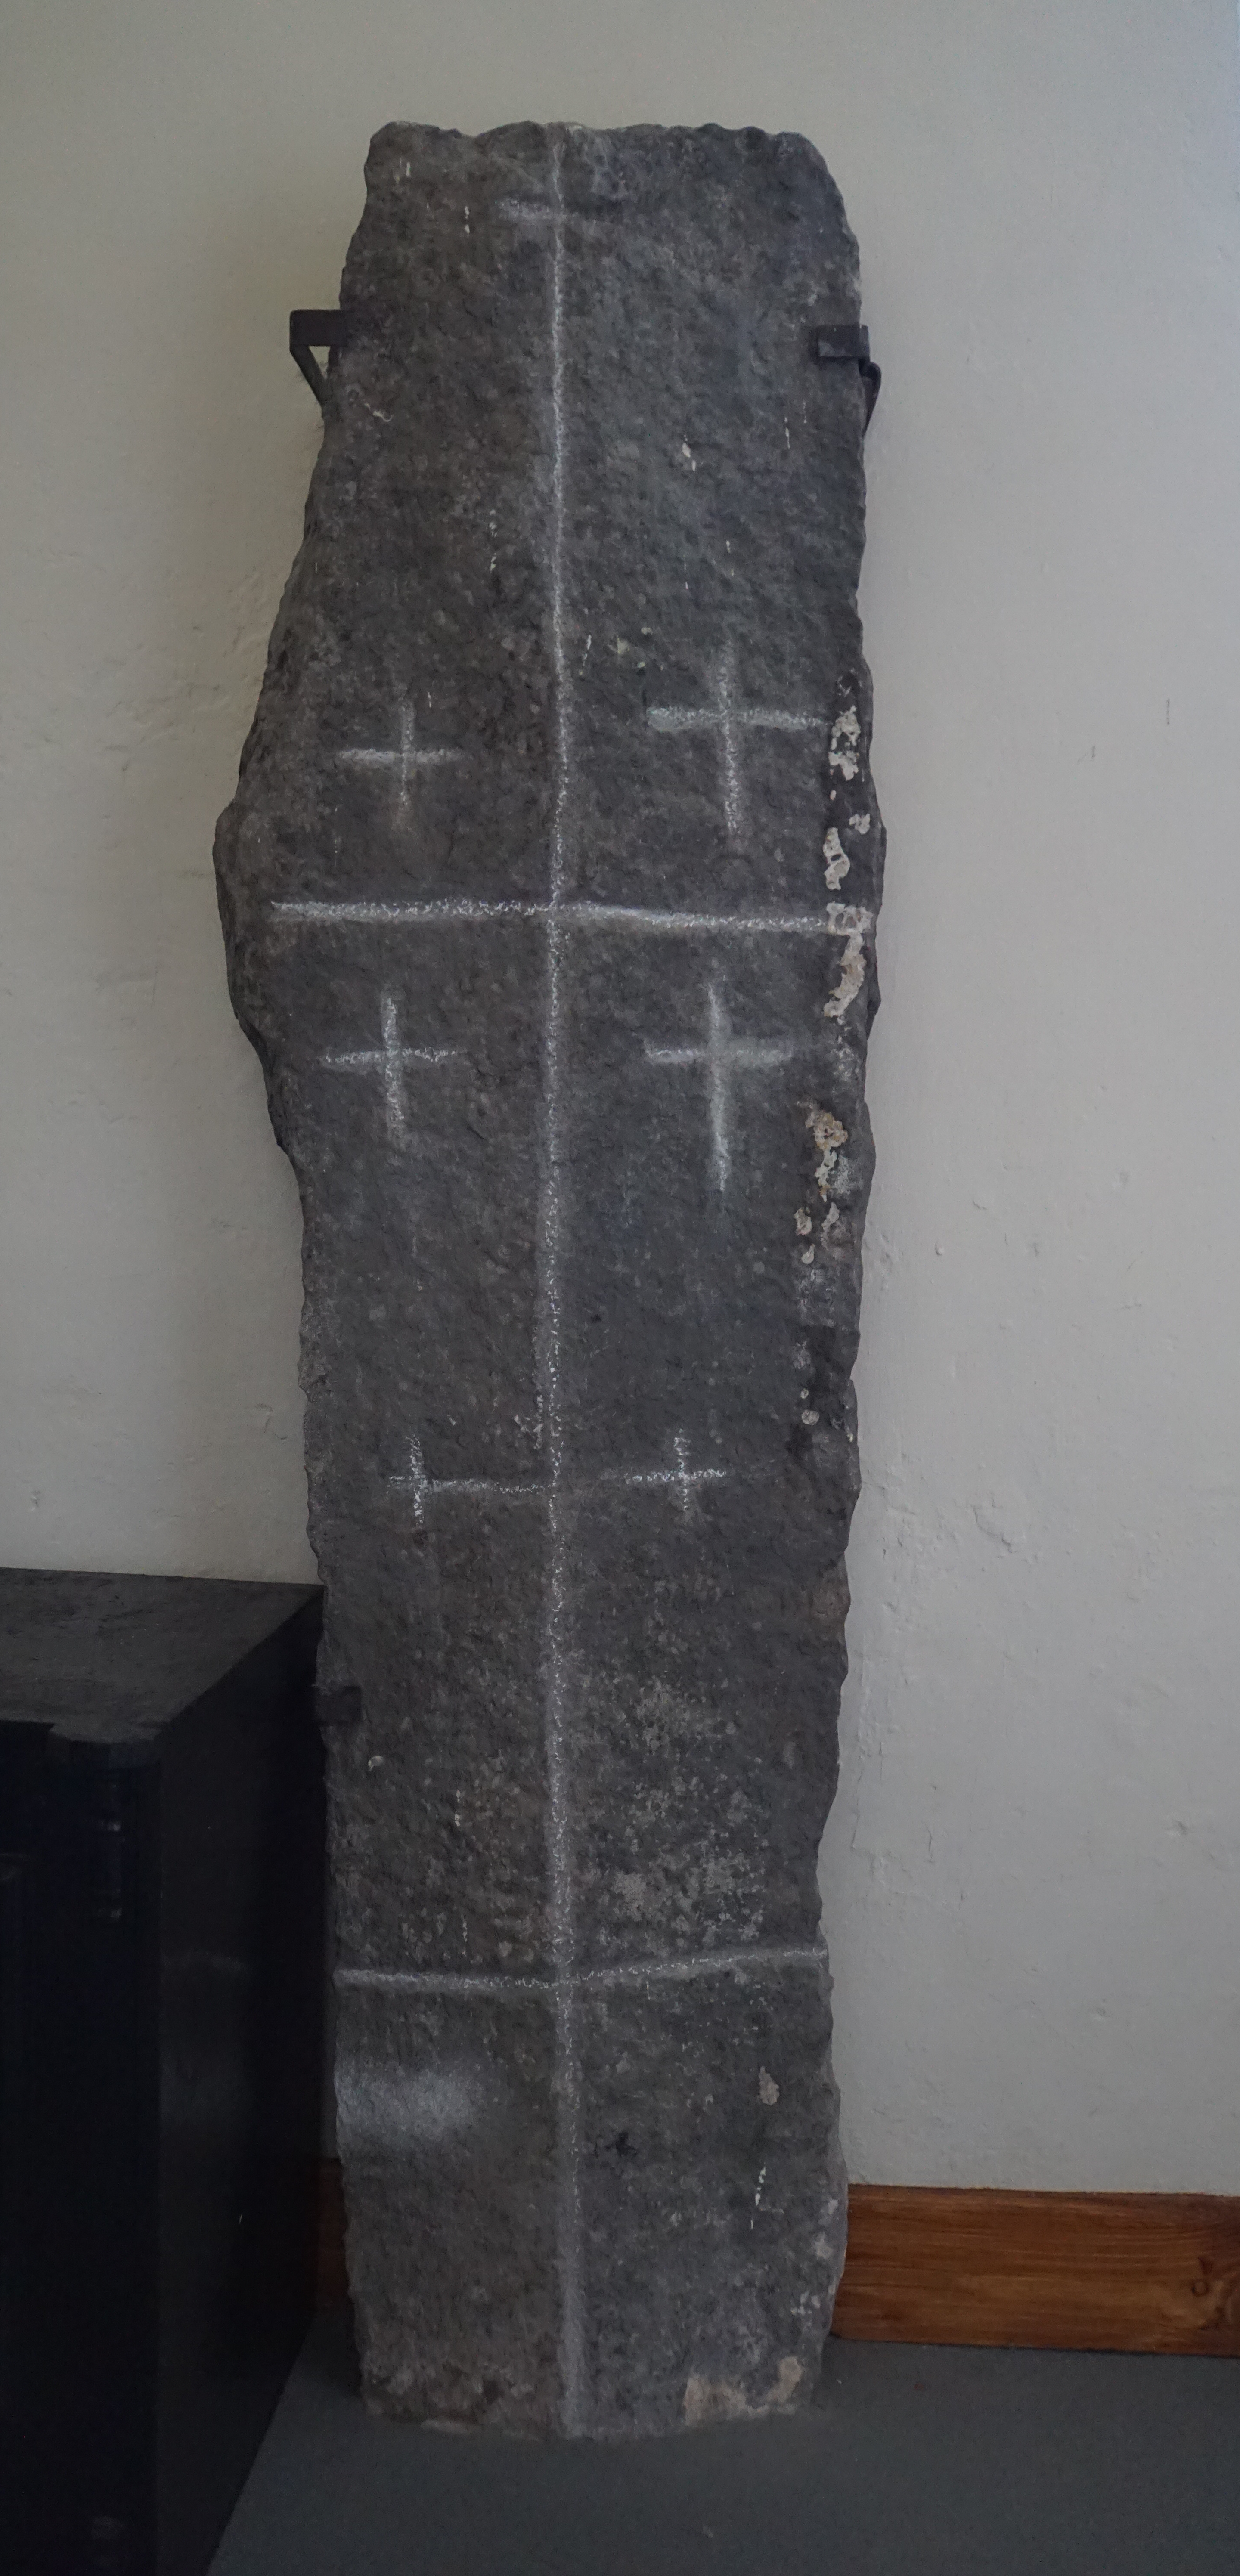 The Celtice Stone from the front.